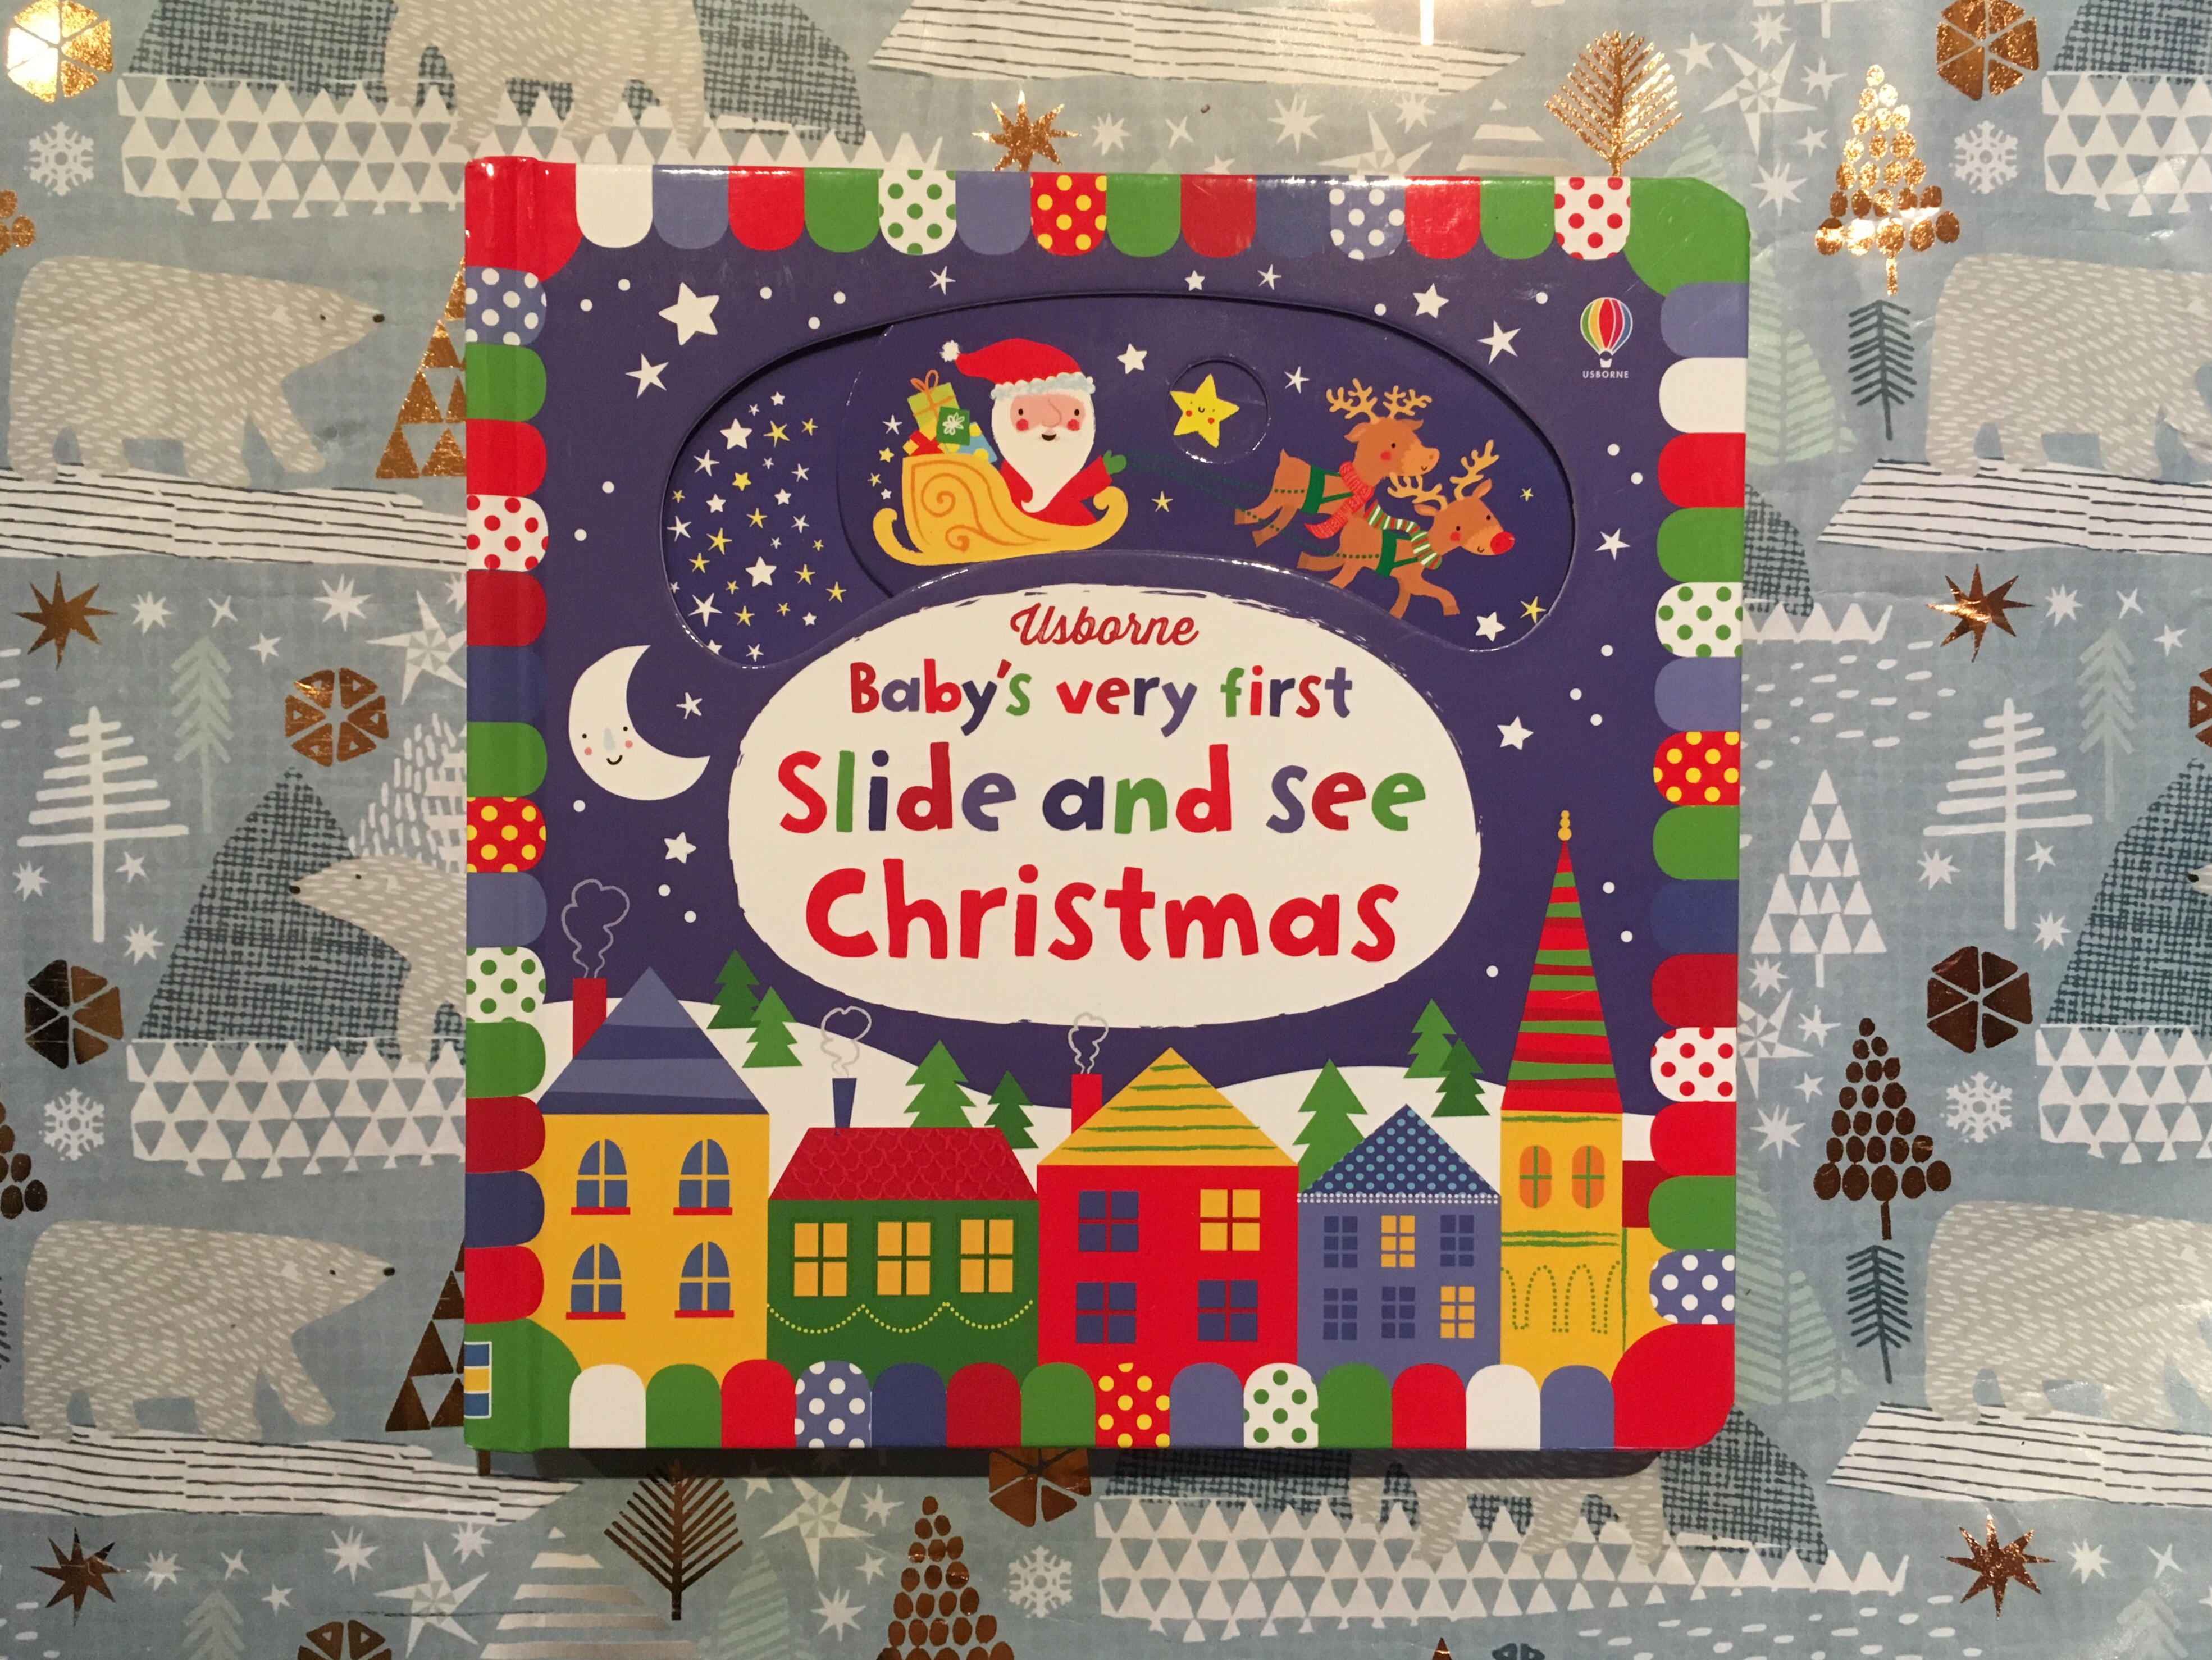 Usborne Baby's Very First Slide and See Christmas